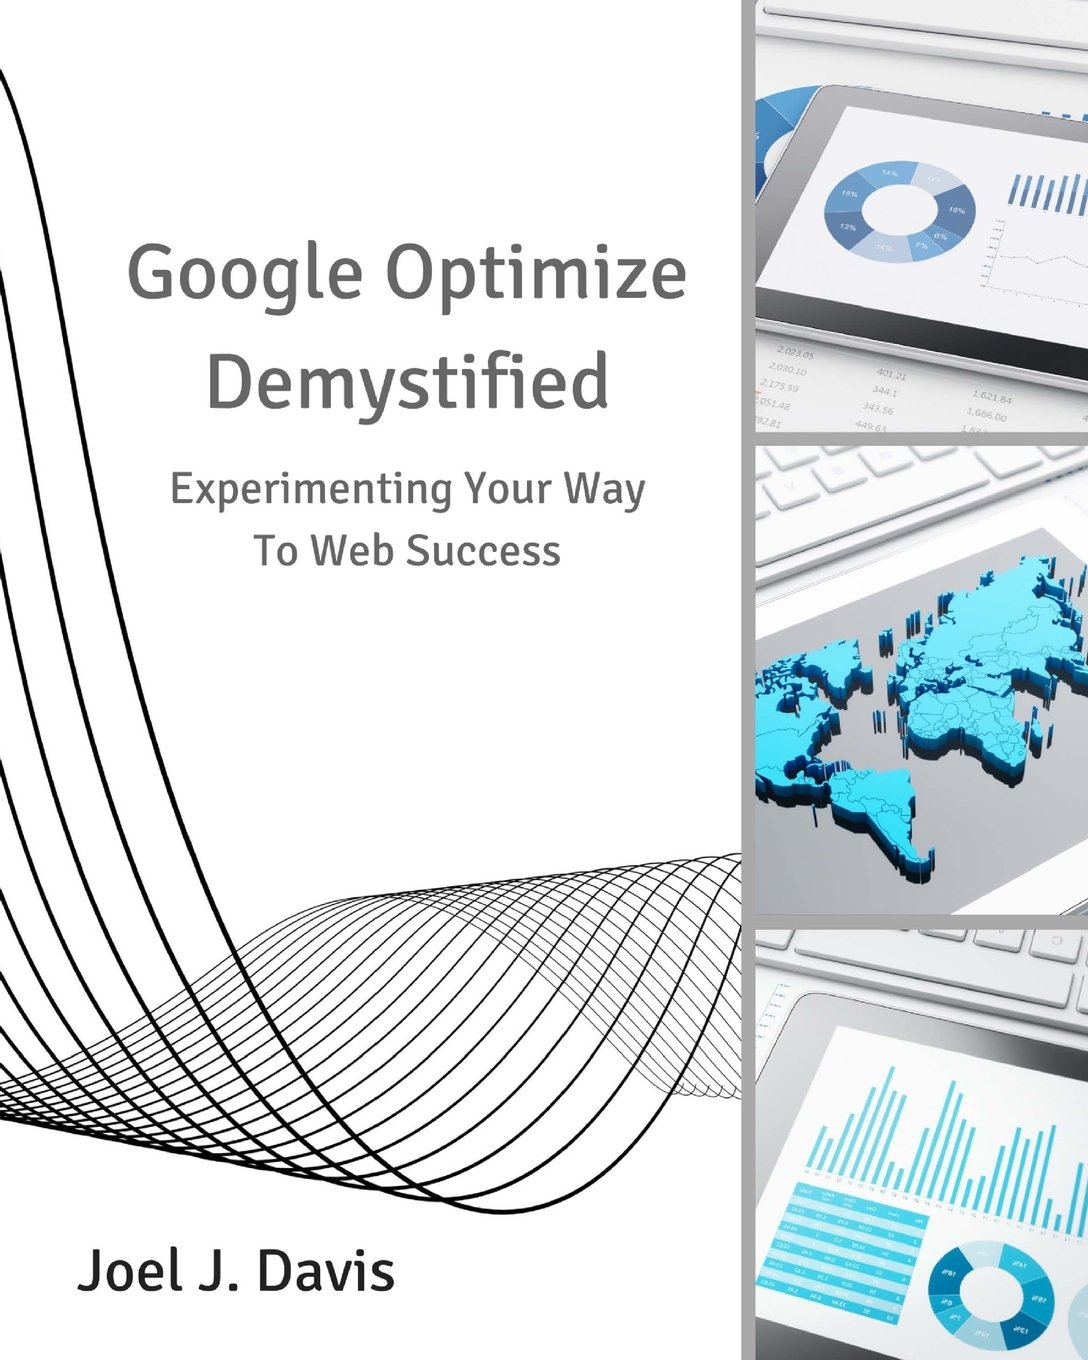 Google Optimize Demystified: Experimenting Your Way to Web Success